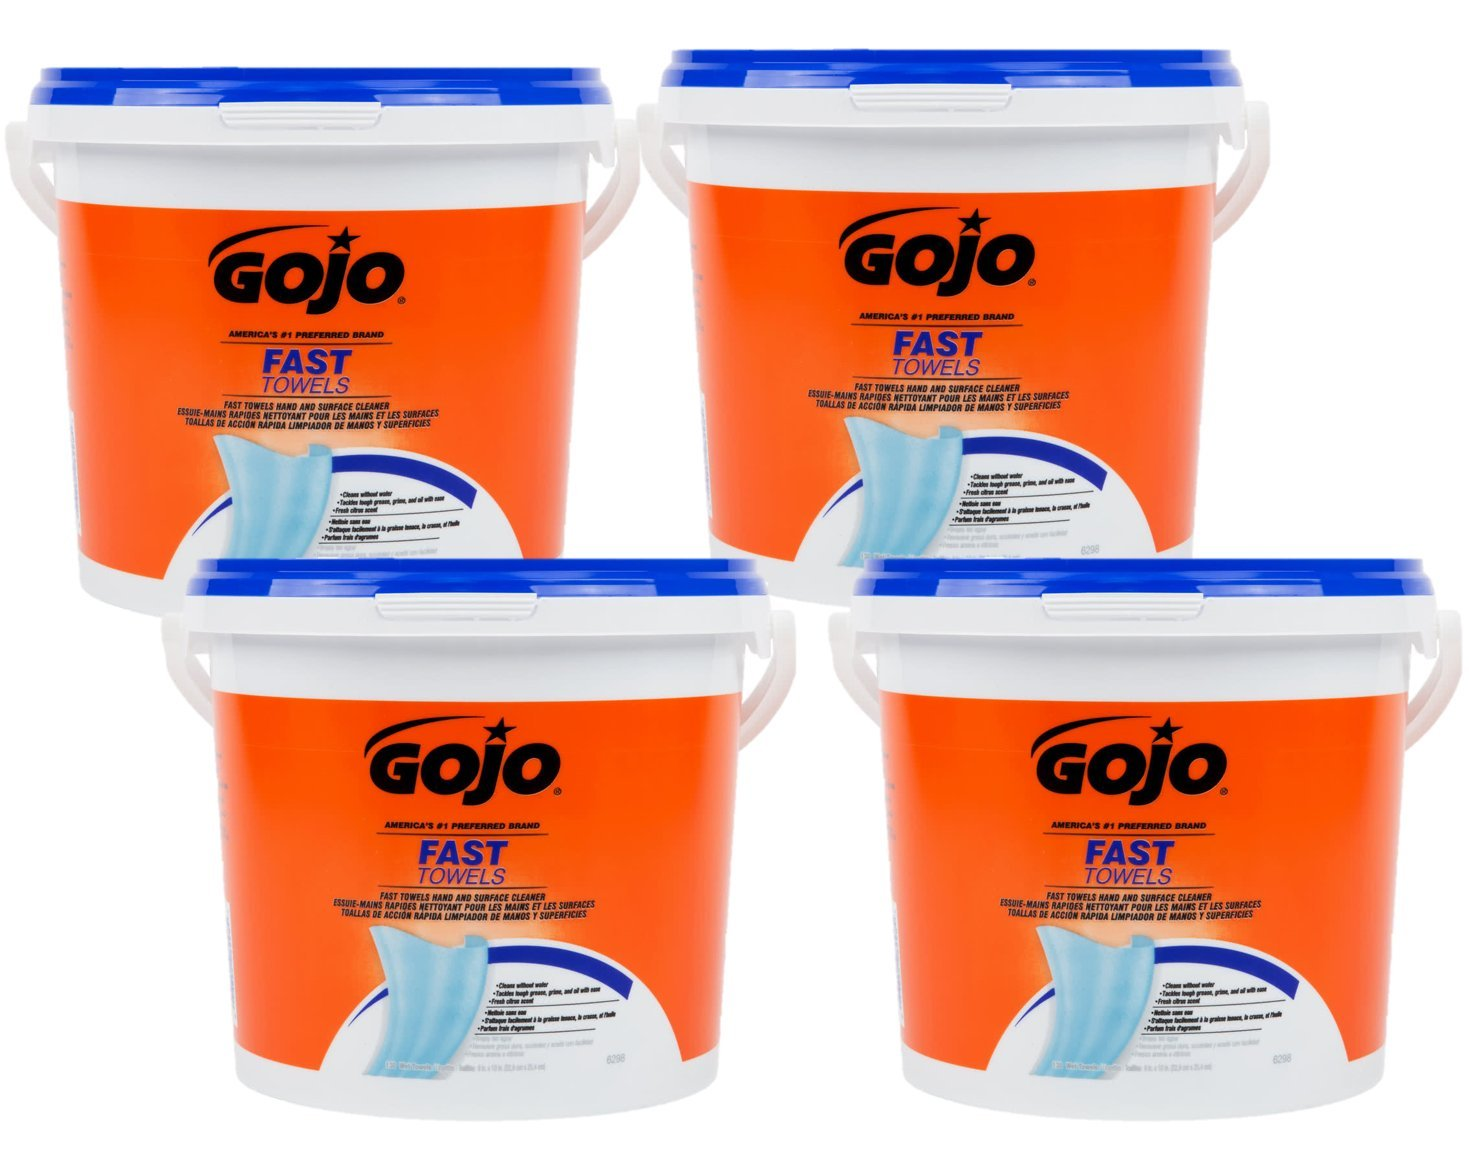 Amazon.com: Gojo Fast Wipes Hand Cleaning Towels 6298-04, 130 Wipe Bucket - 1 Count: Automotive